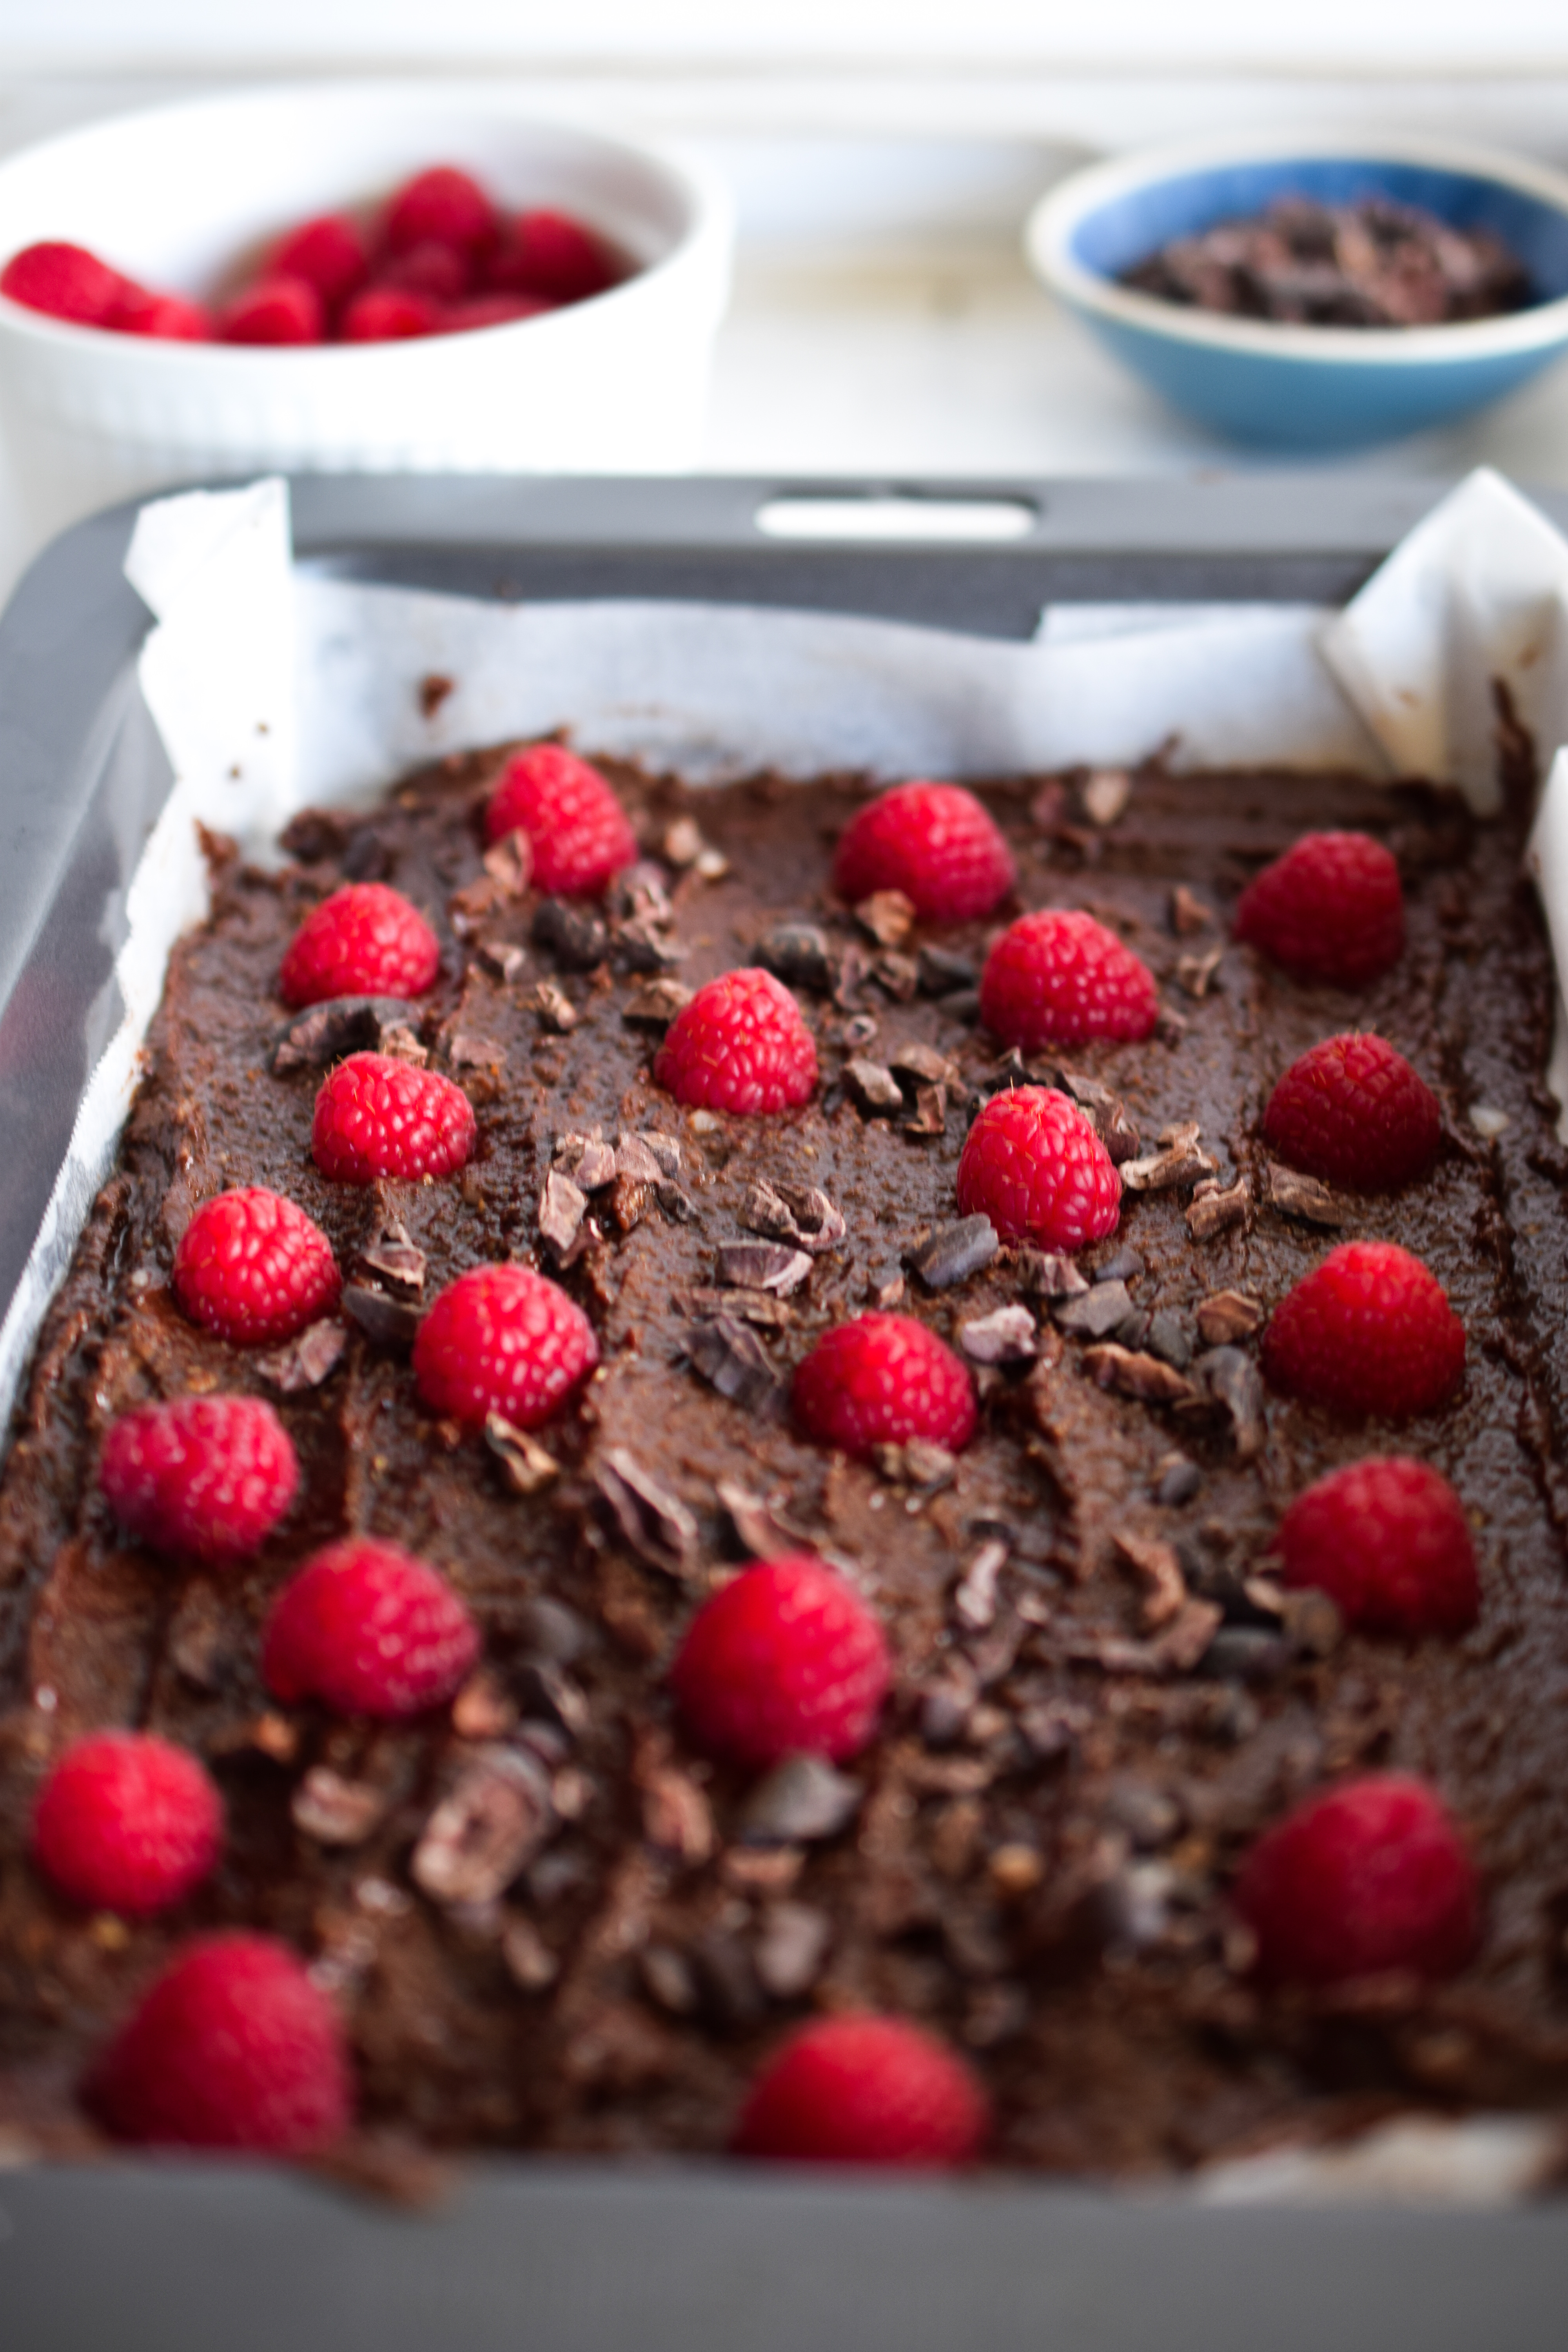 Chocolate Raspberry Fudge with bowl of fresh raspberries and bowl of cacao nibs